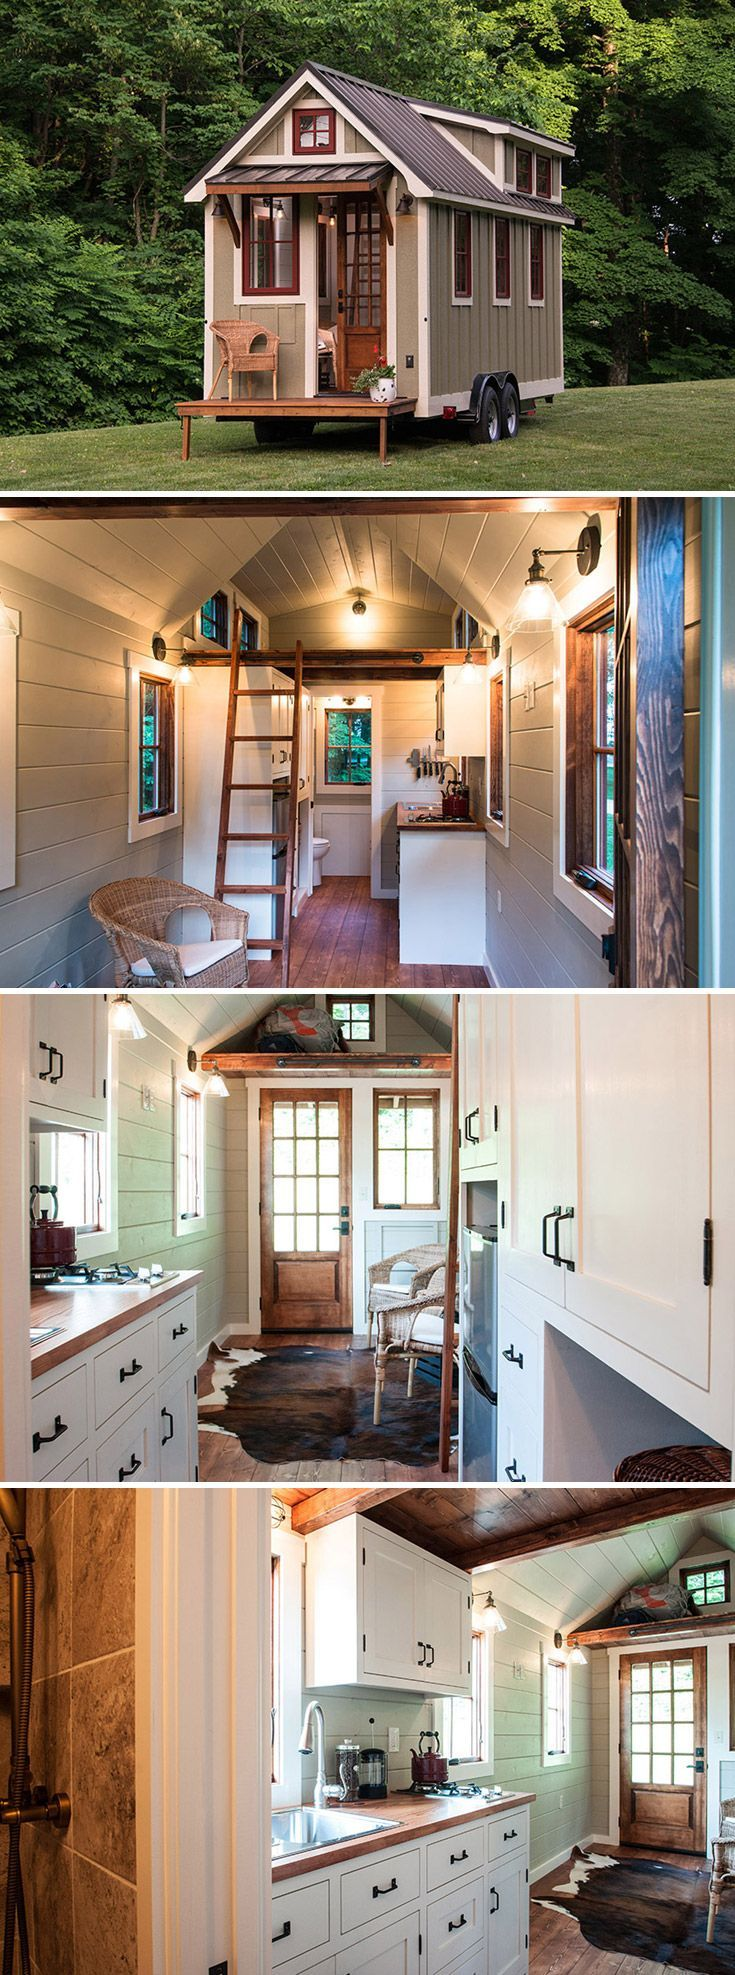 Ynez by Timbercraft Tiny Homes #tinyhomes